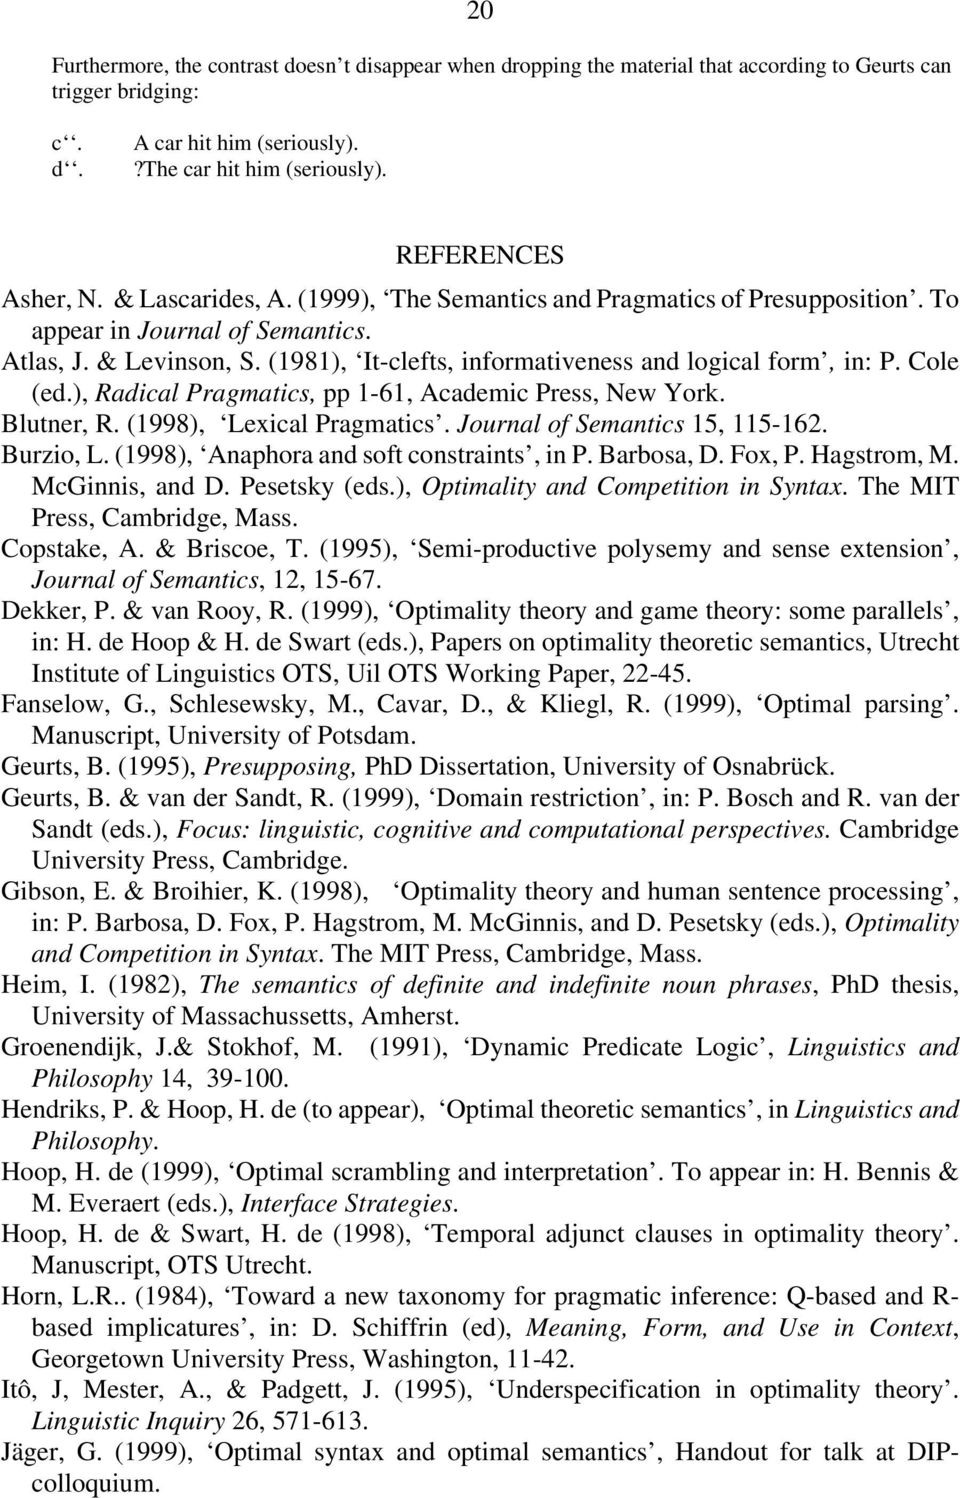 (1981), It-clefts, informativeness and logical form, in: P. Cole (ed.), Radical Pragmatics, pp 1-61, Academic Press, New York. Blutner, R. (1998), Lexical Pragmatics. Journal of Semantics 15, 115-162.